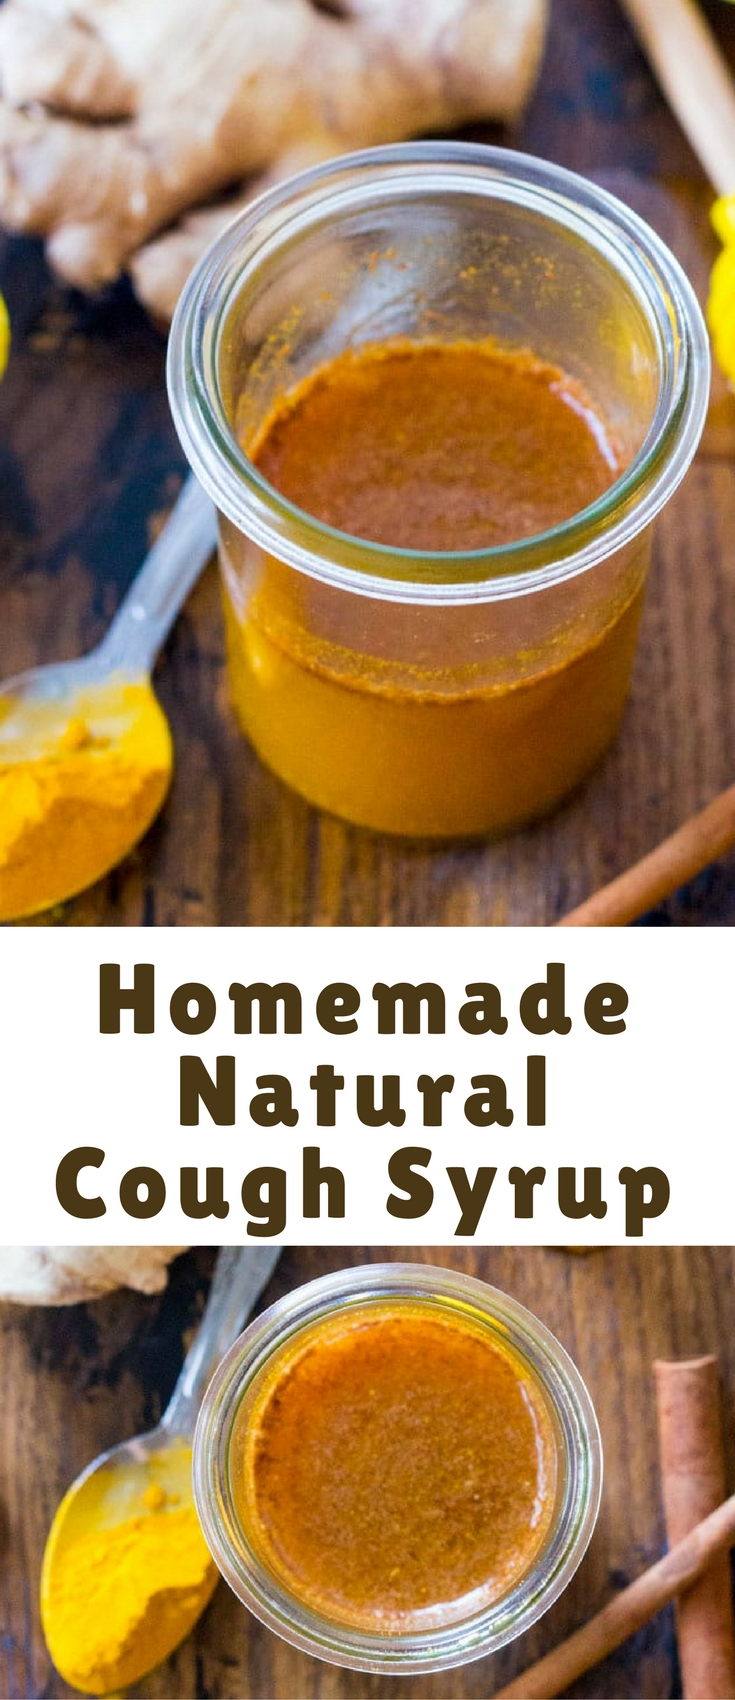 Easy Homemade Natural Cold Syrup is great to keep on hand during the cold season. It will give your immune system a boost, using all natural ingredients.